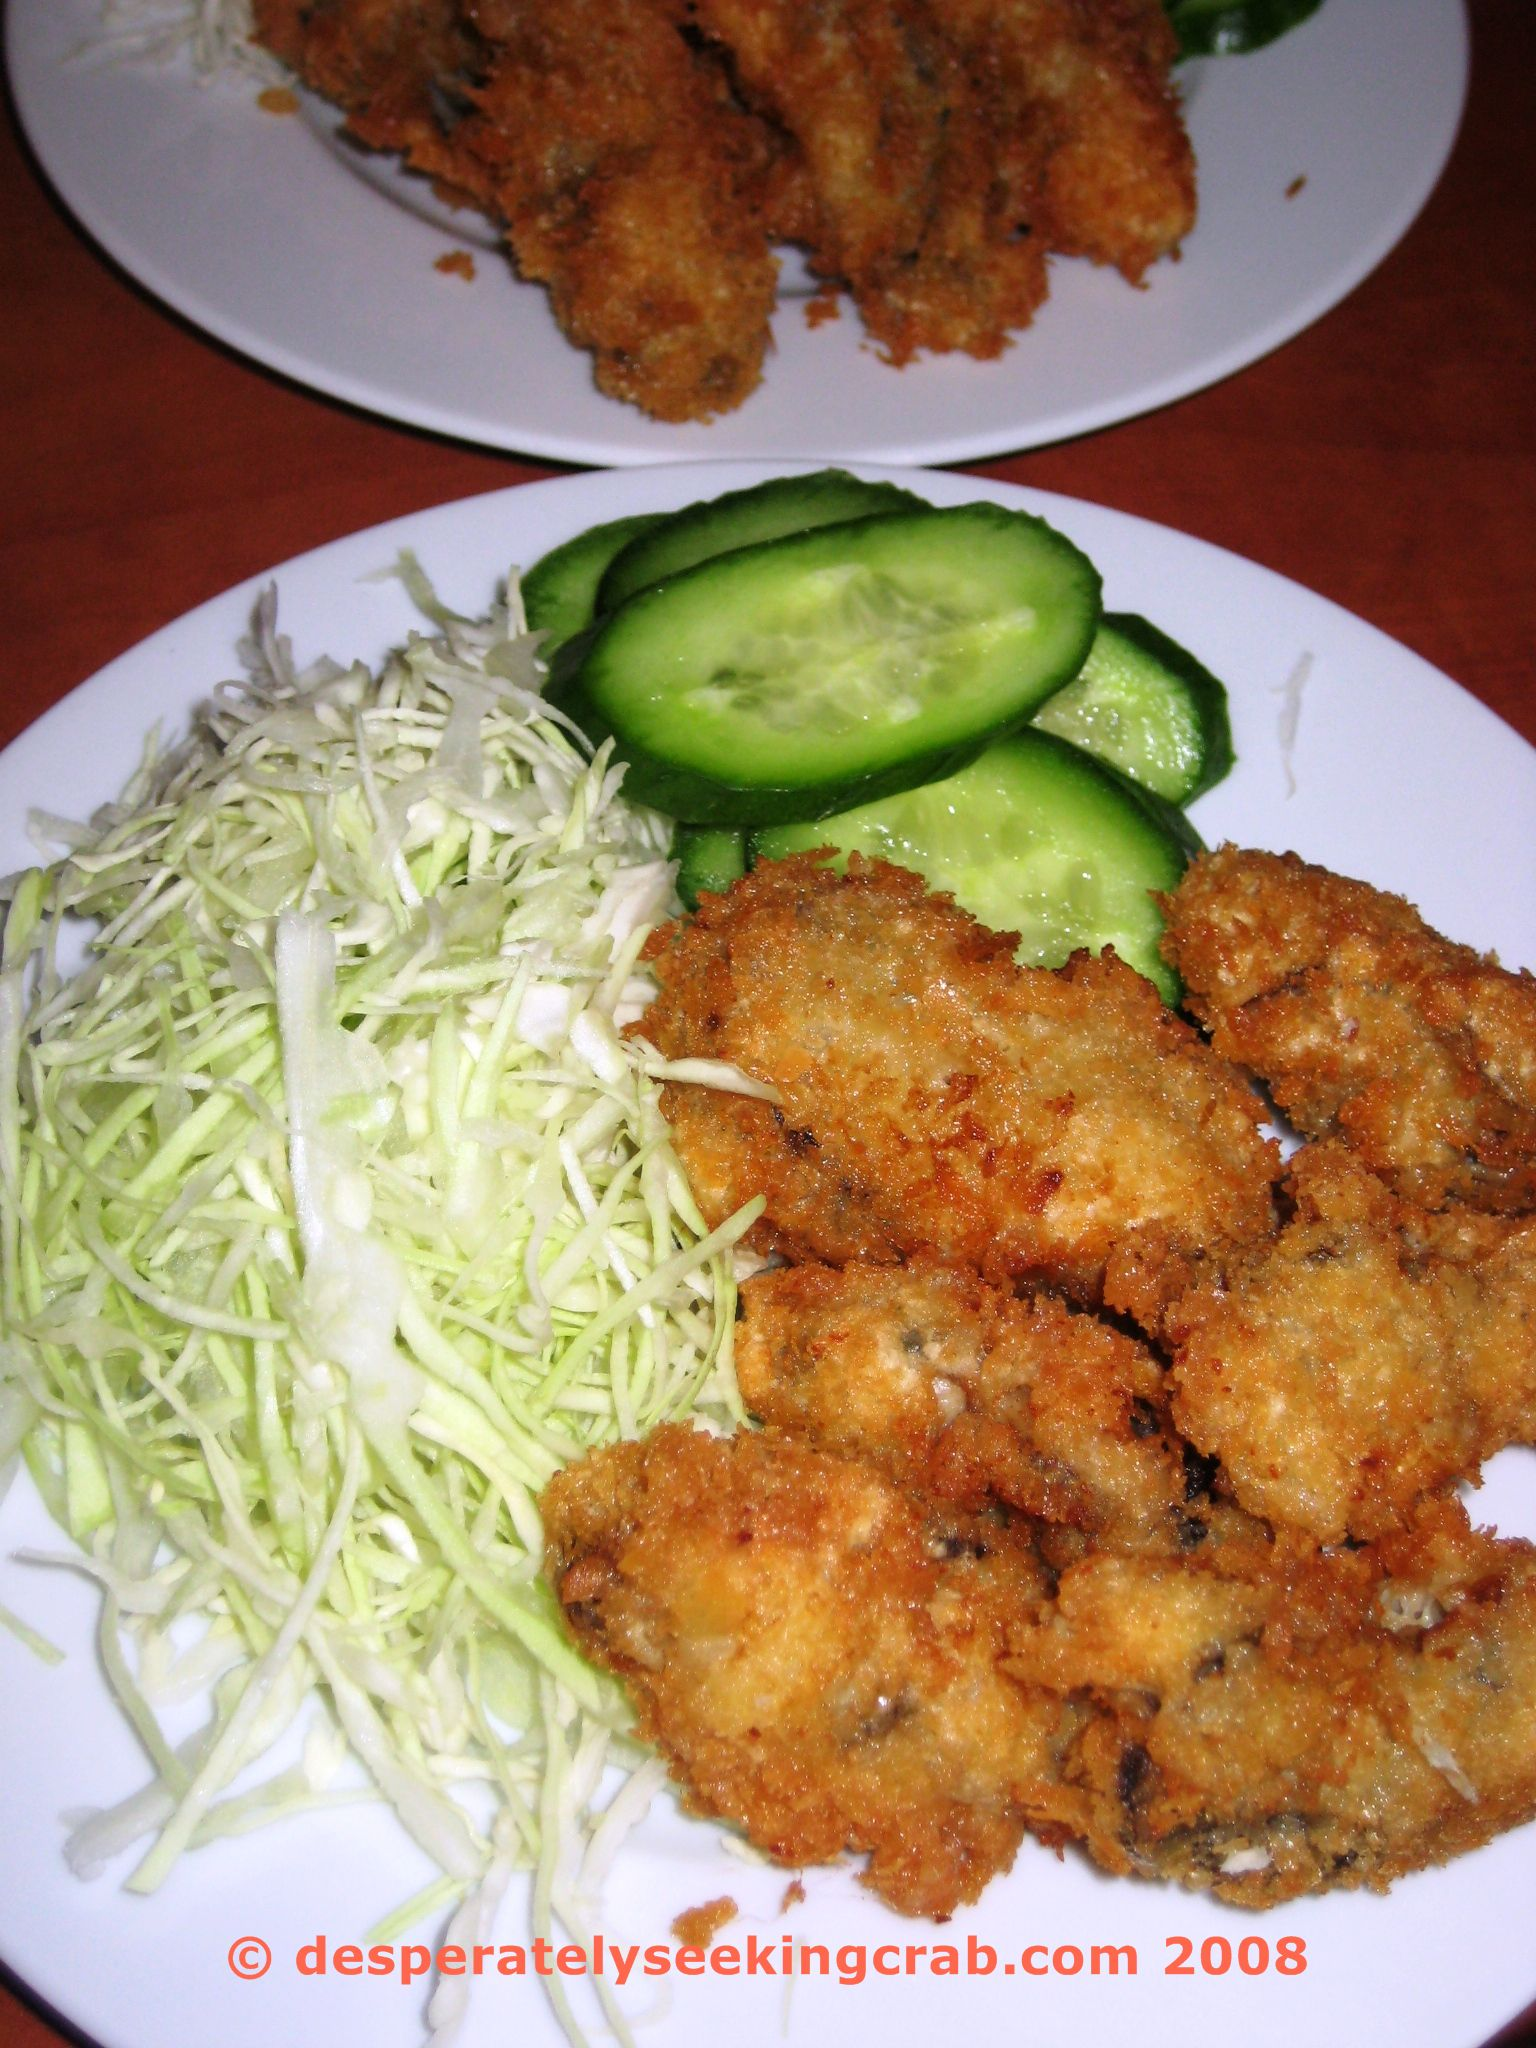 Japanese Fried Oyster